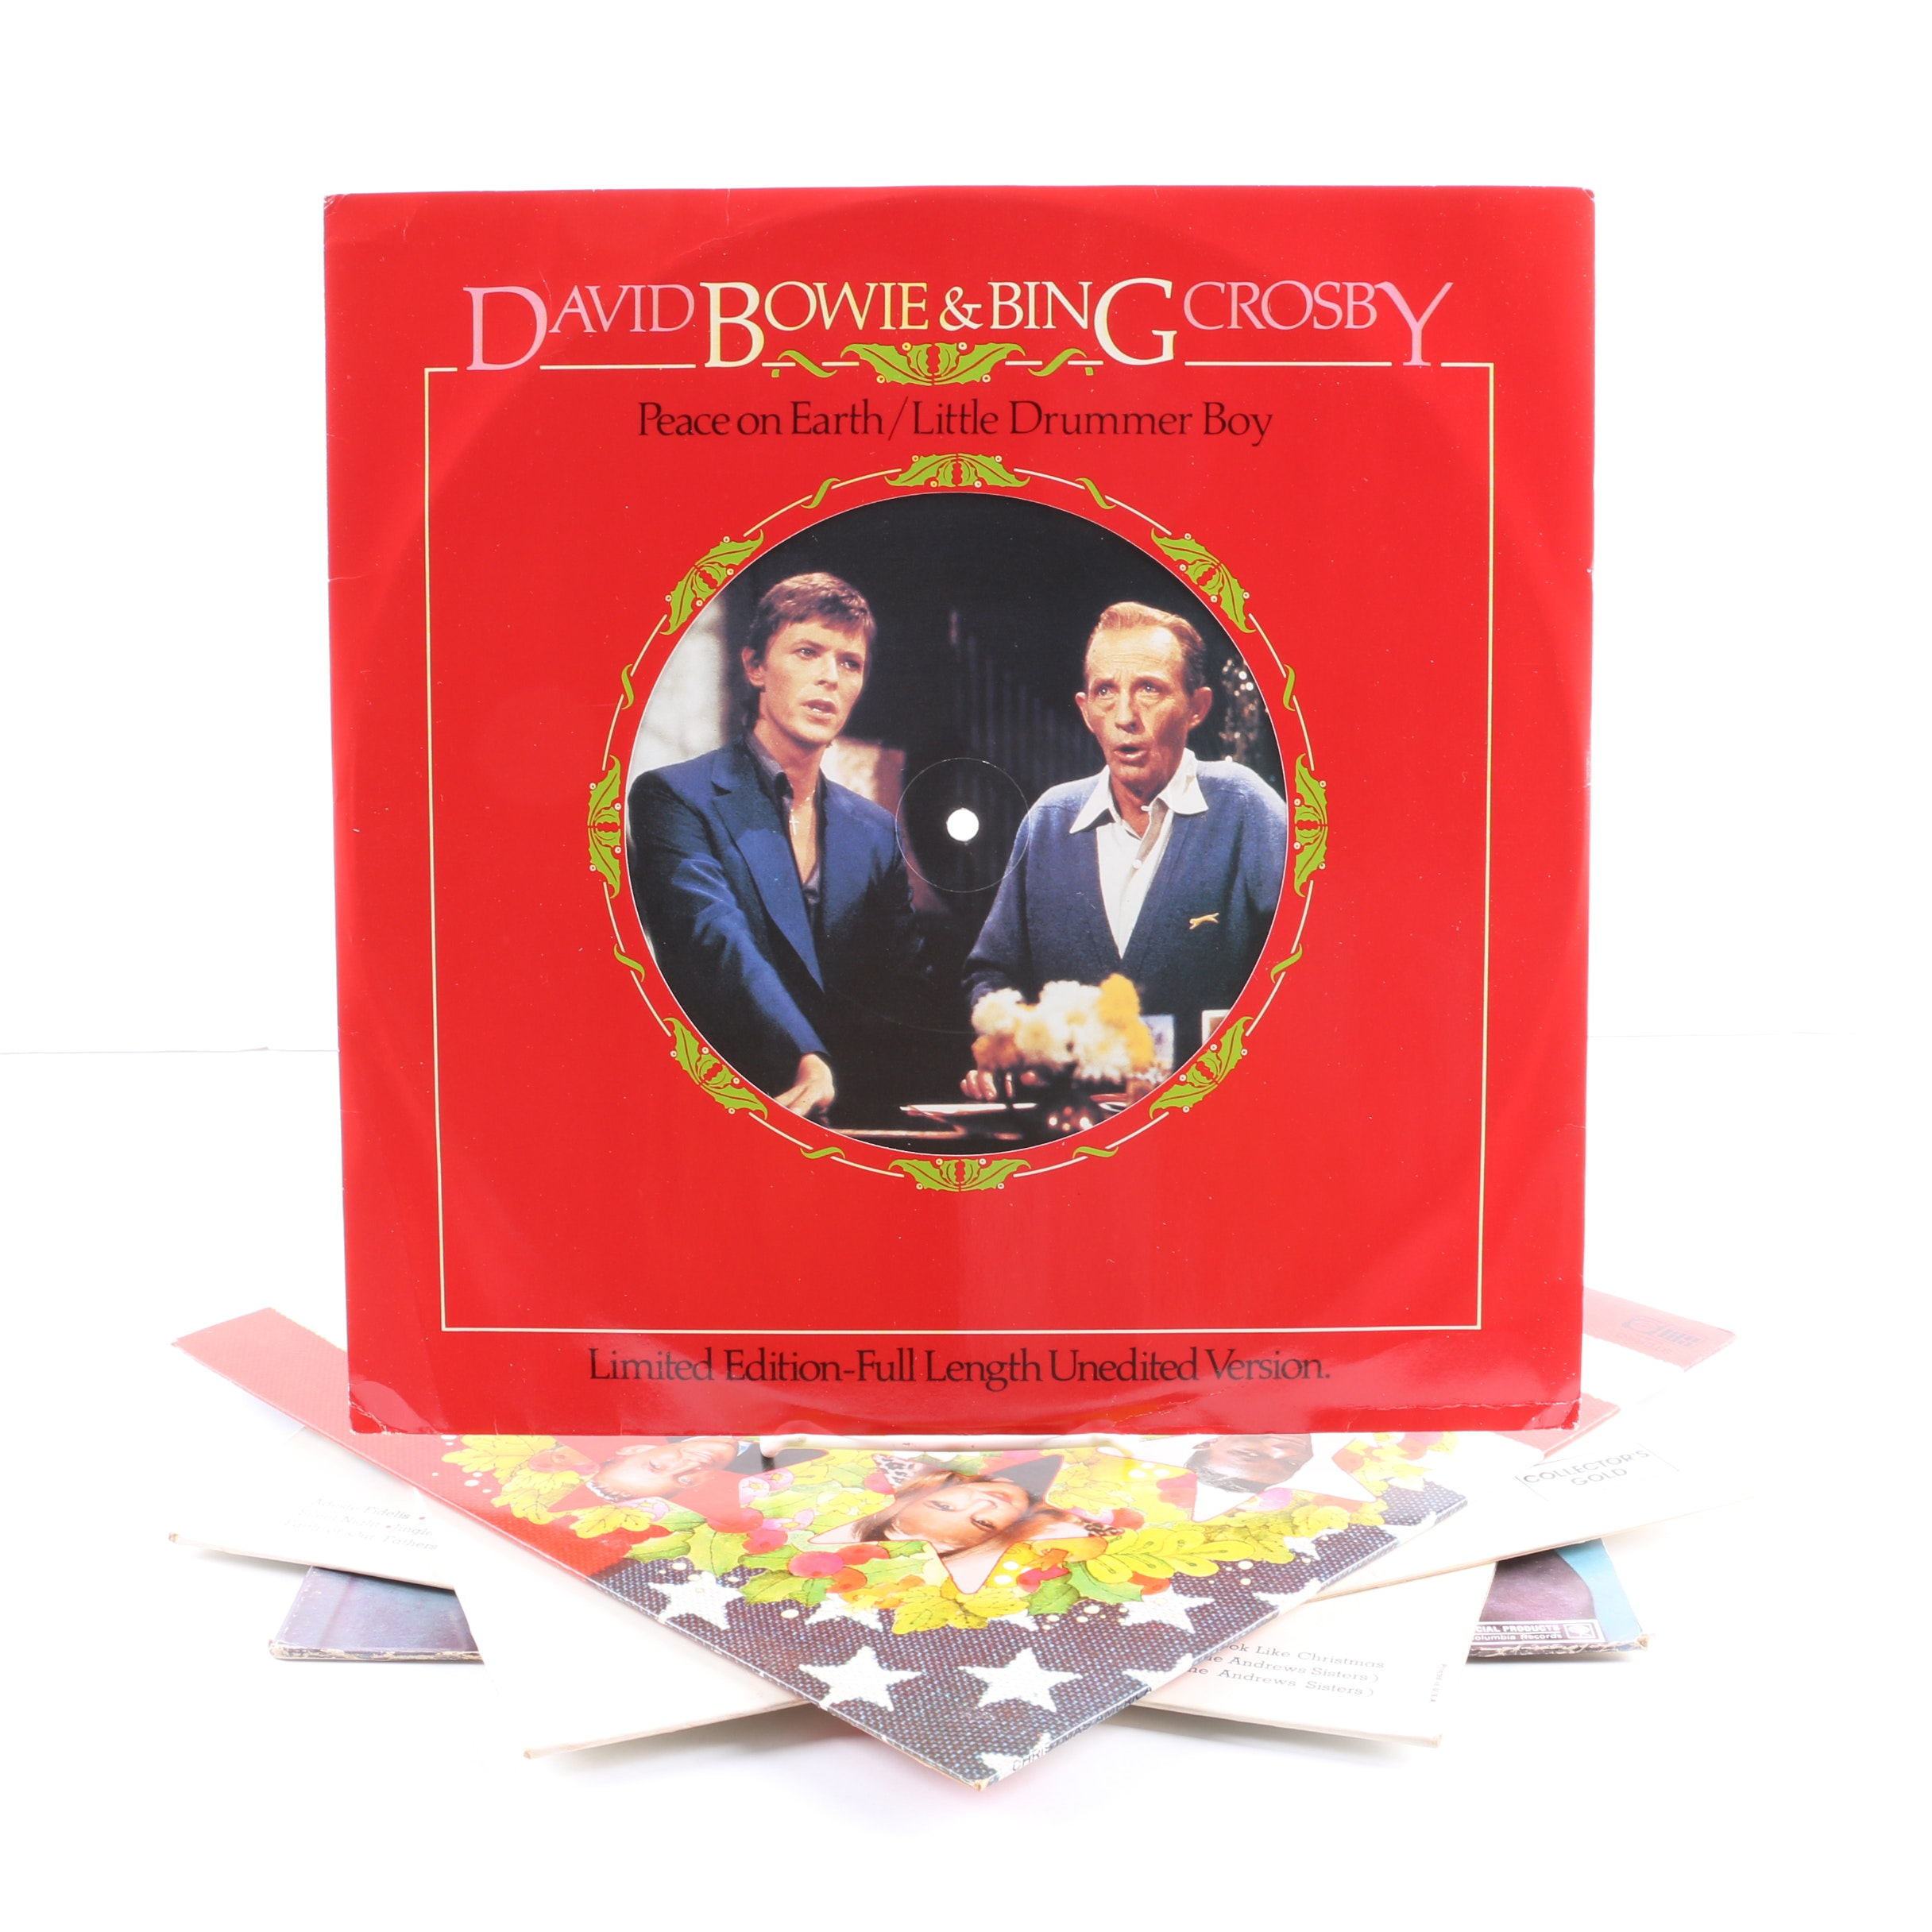 """Bing Crosby Christmas LPs Including """"Little Drummer Boy"""" With David Bowie"""